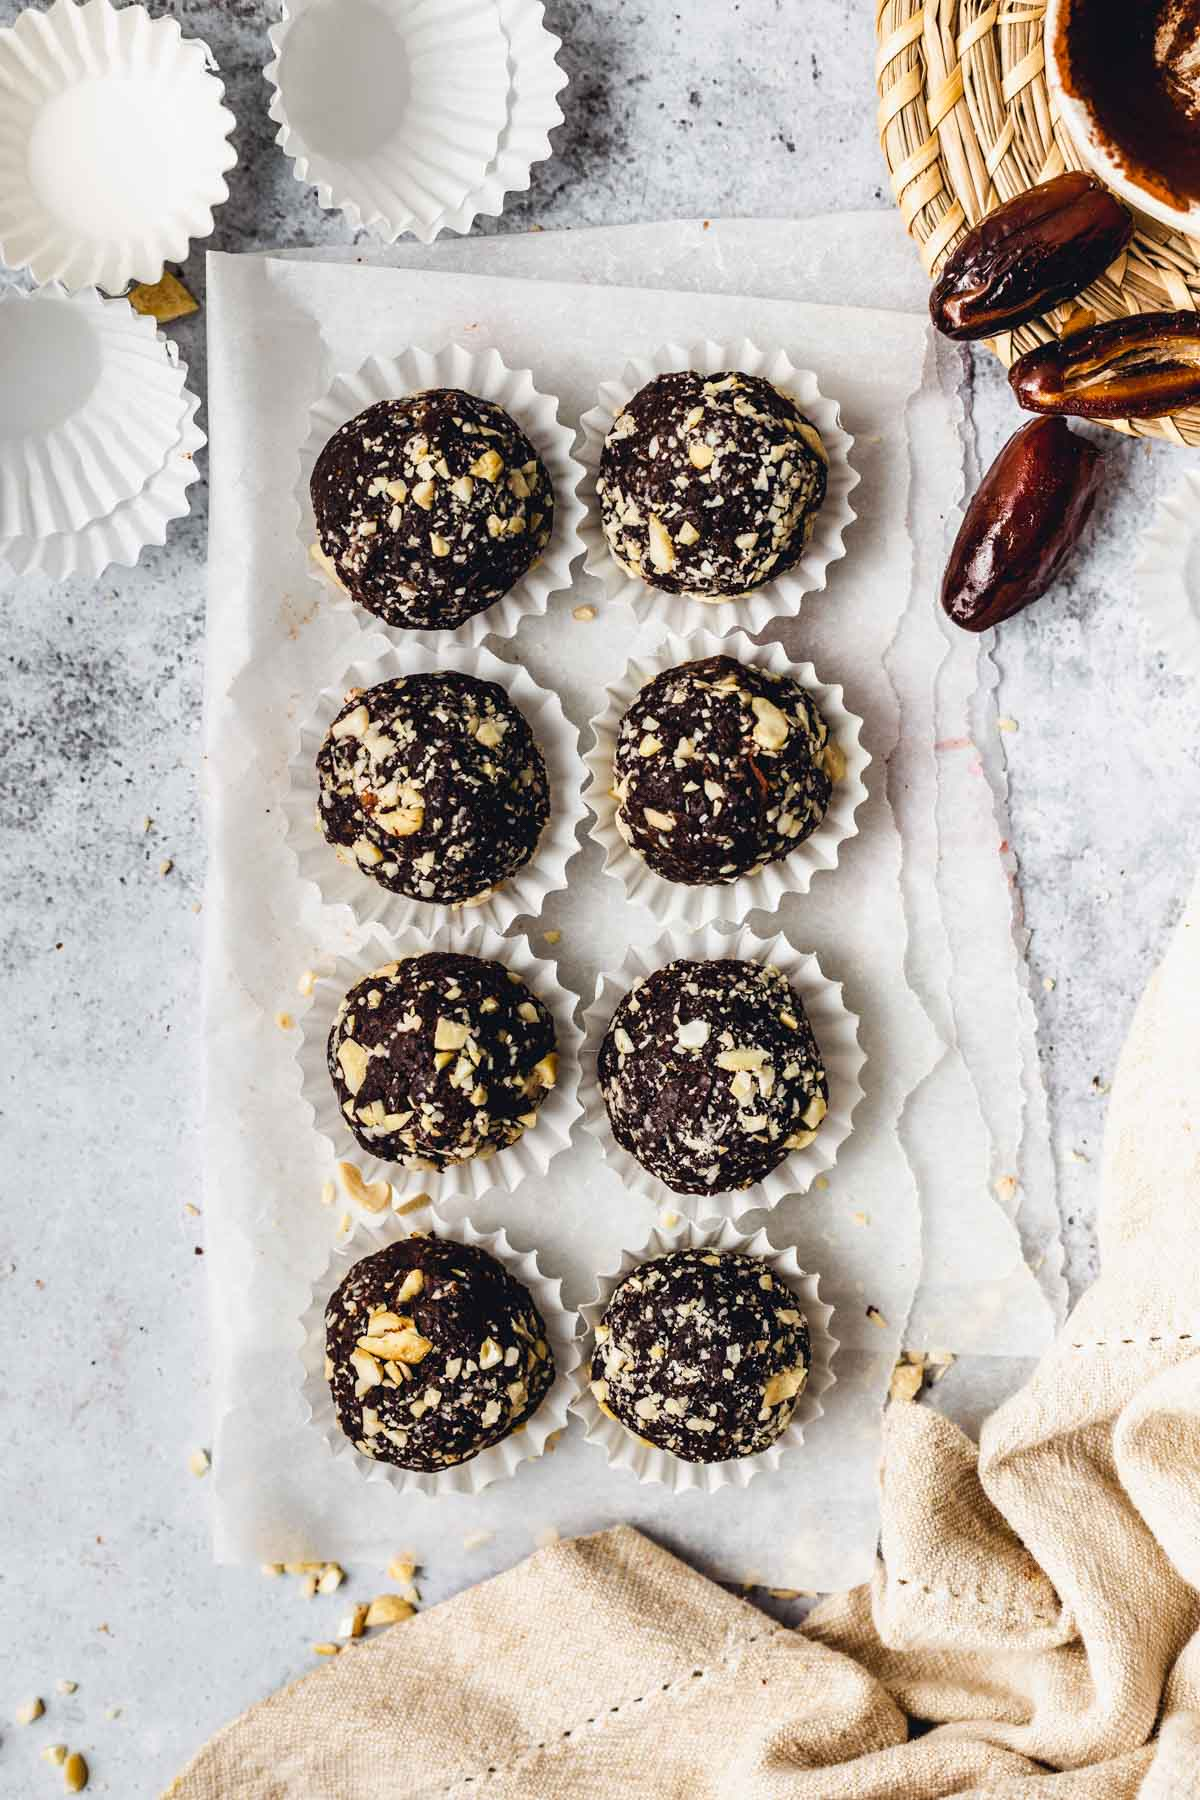 Bliss balls placed on a piece of parchment paper.